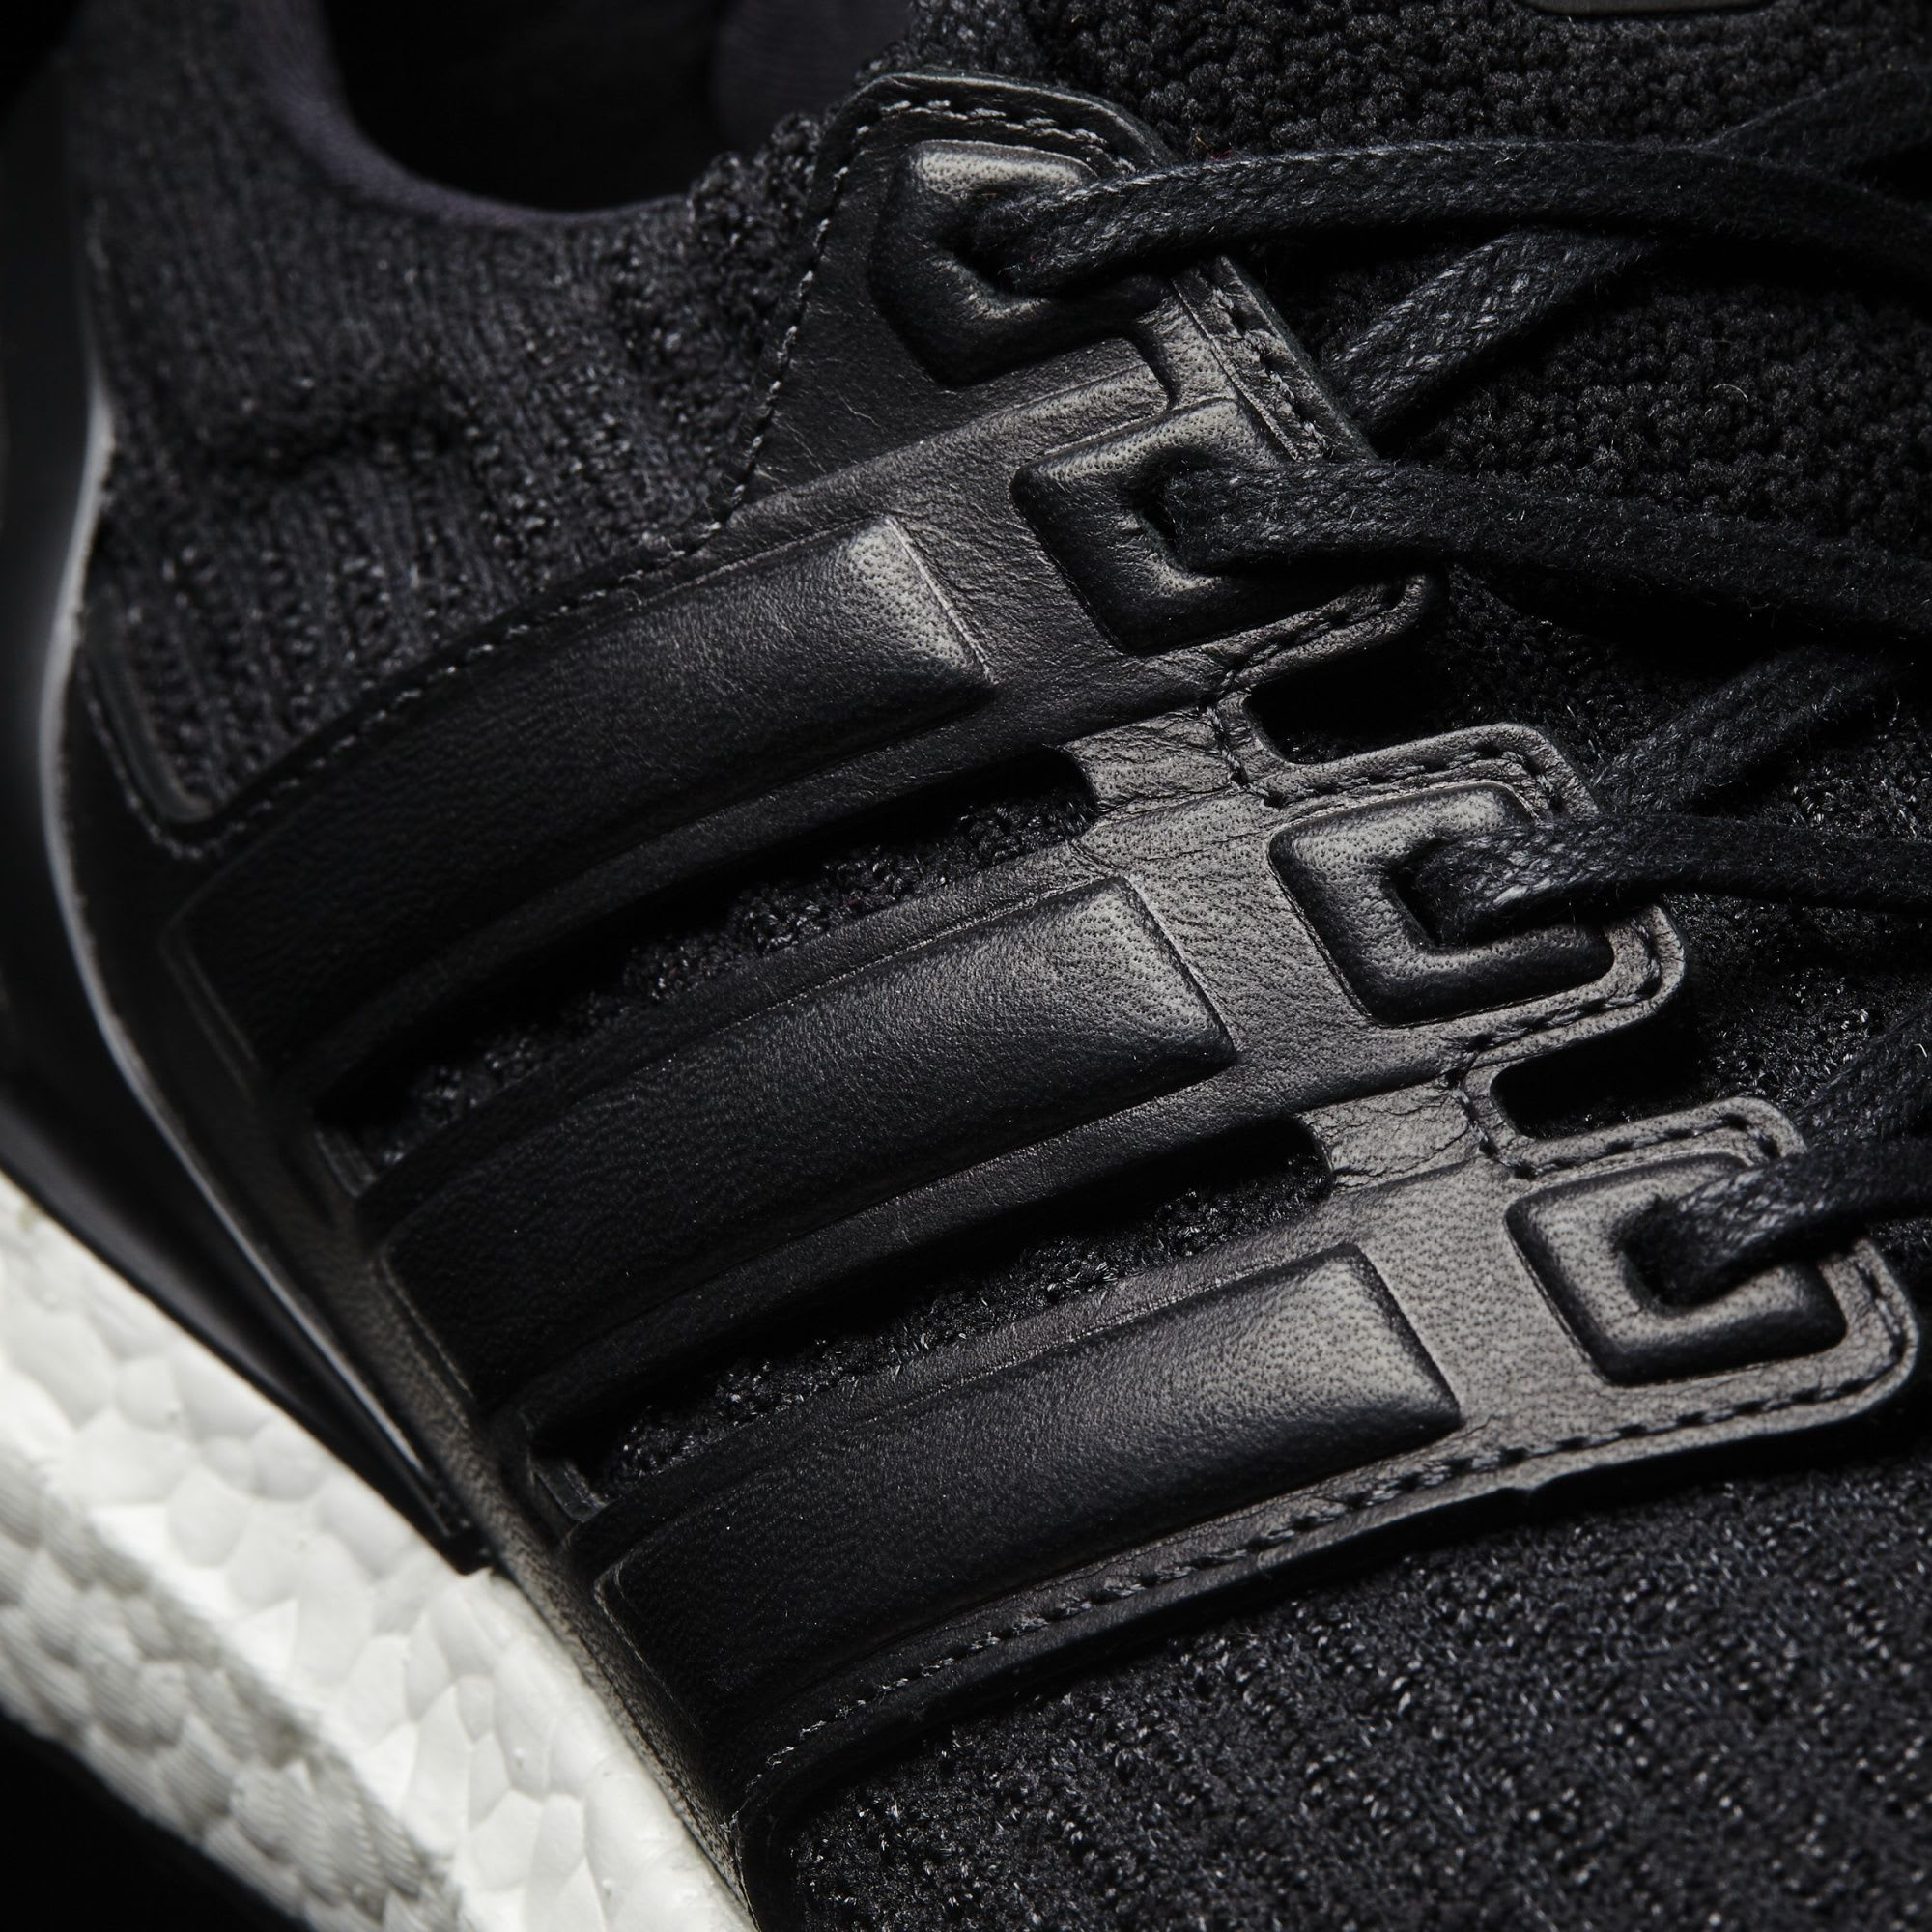 reputable site 7e623 019fc Image via Adidas Black Adidas Ultra Boost Leather Cage BA8924 Detail